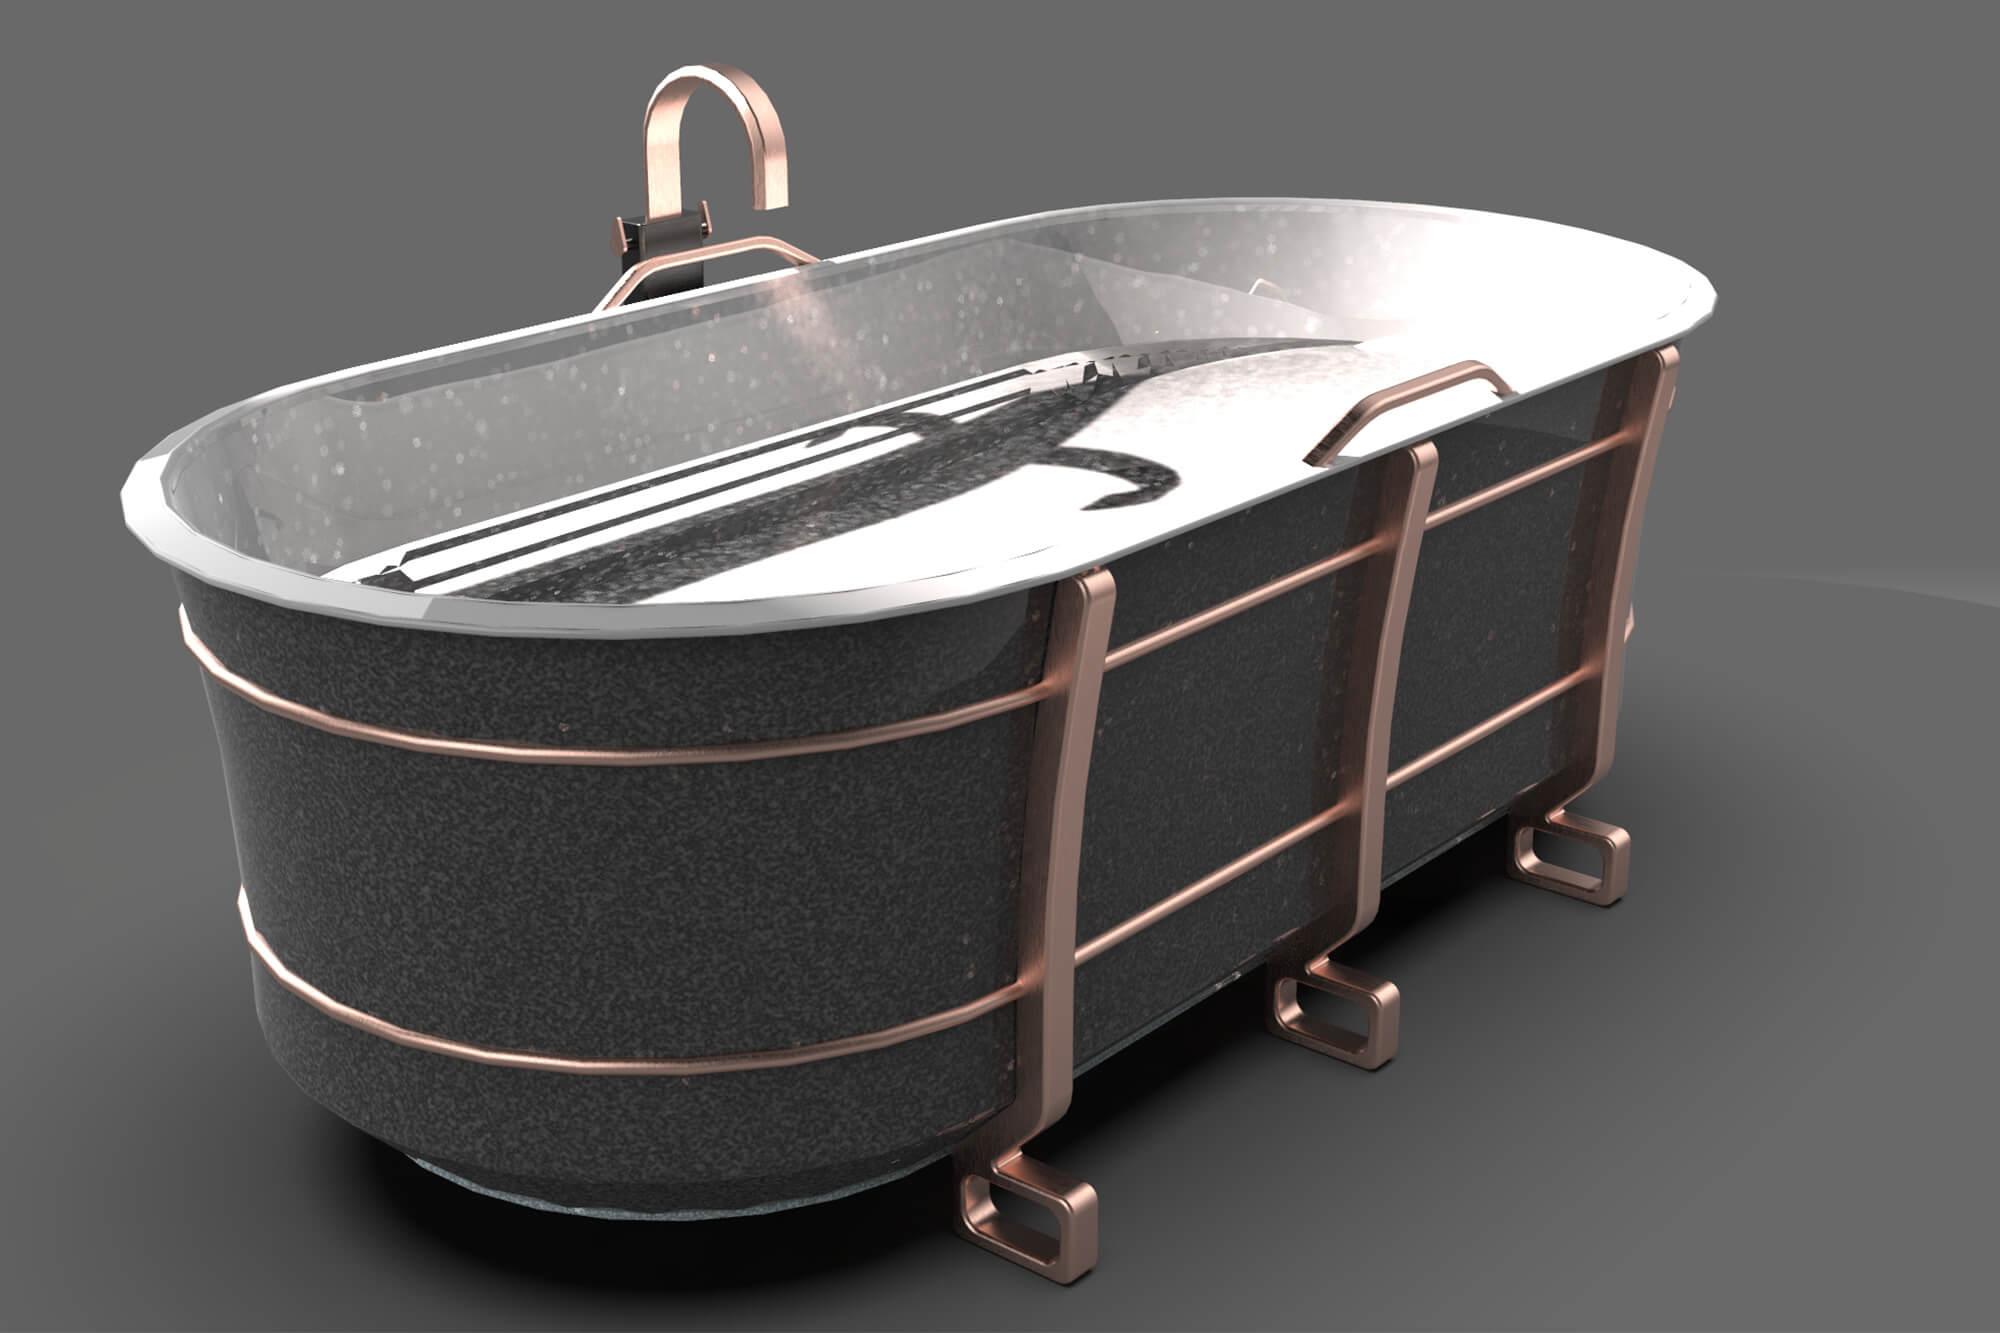 CAD design of a modern slate and metal bath with rose gold hardware